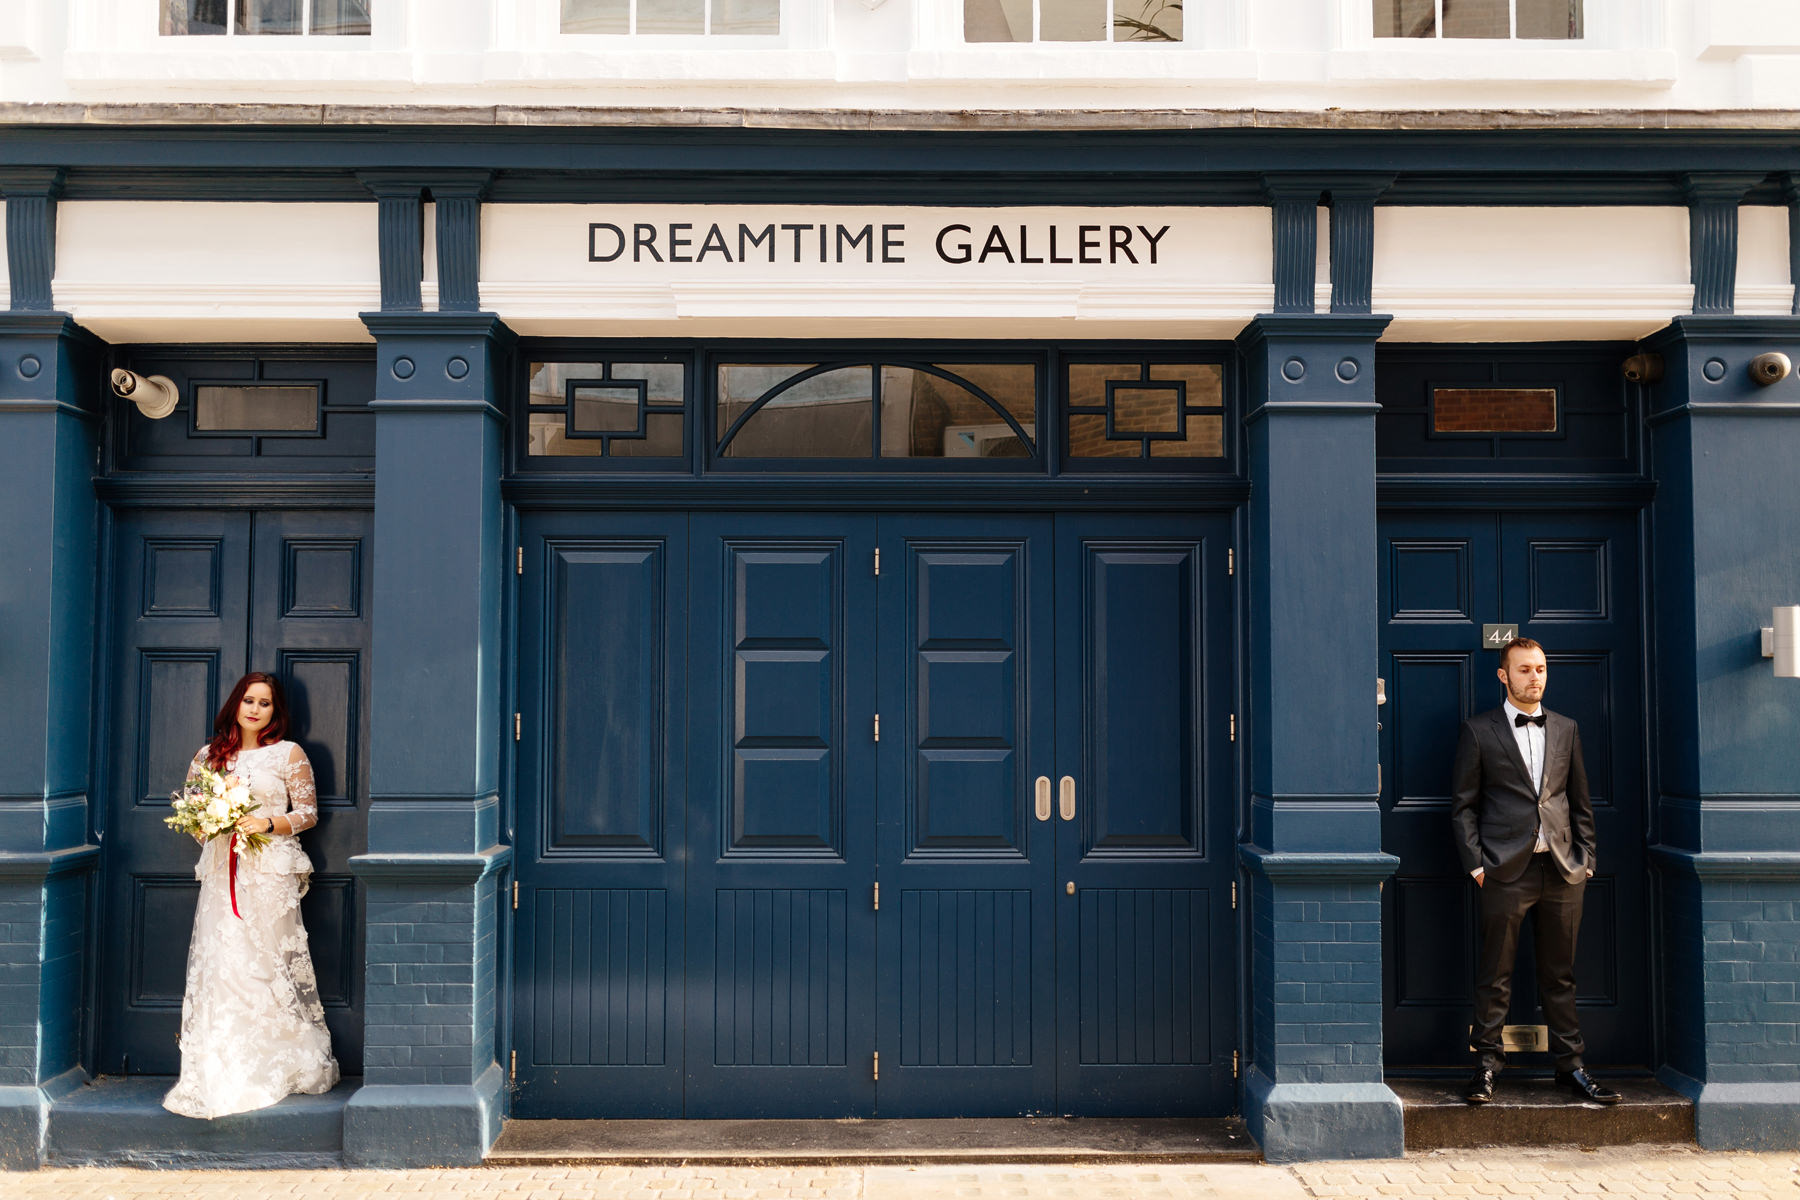 dreamtime gallery london notting hill